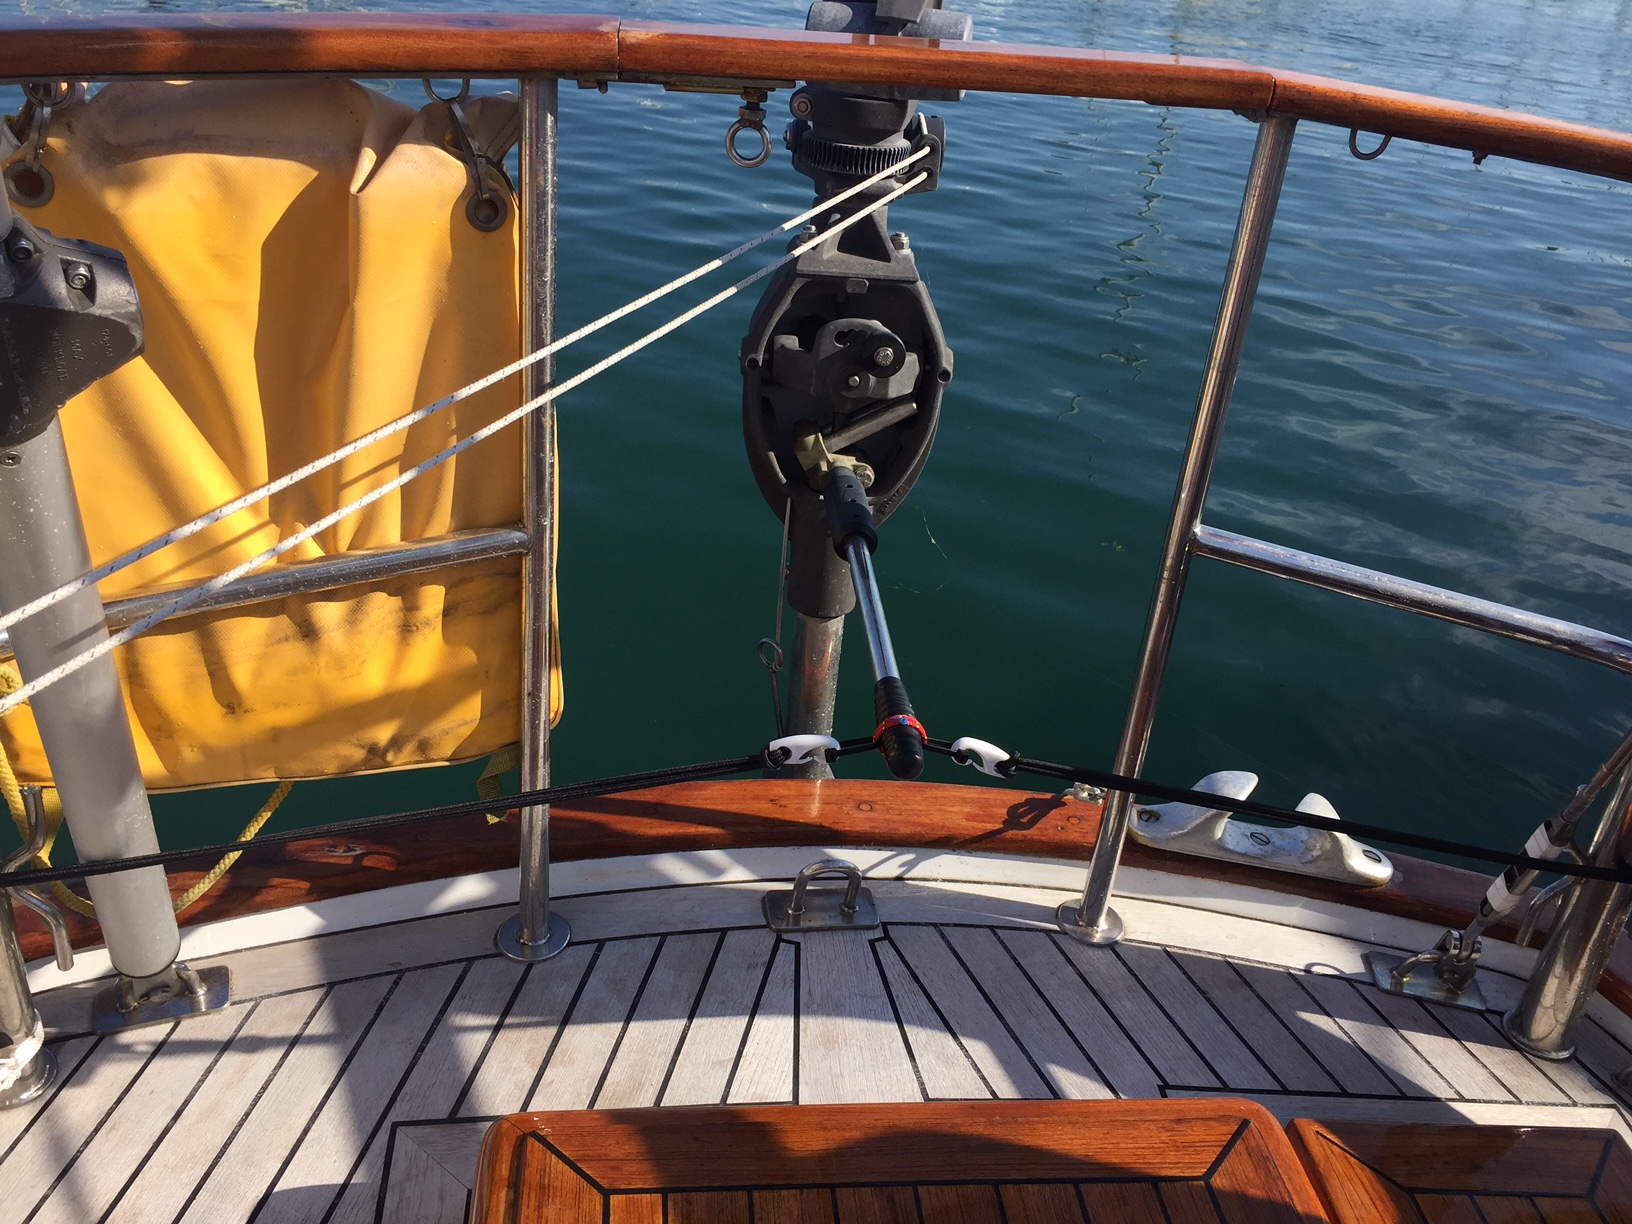 ... benefit for this boat has been the ability to maneuver in anchorages  and marina's better by coordinating the Hydrovane's rudder with the ships  rudder.